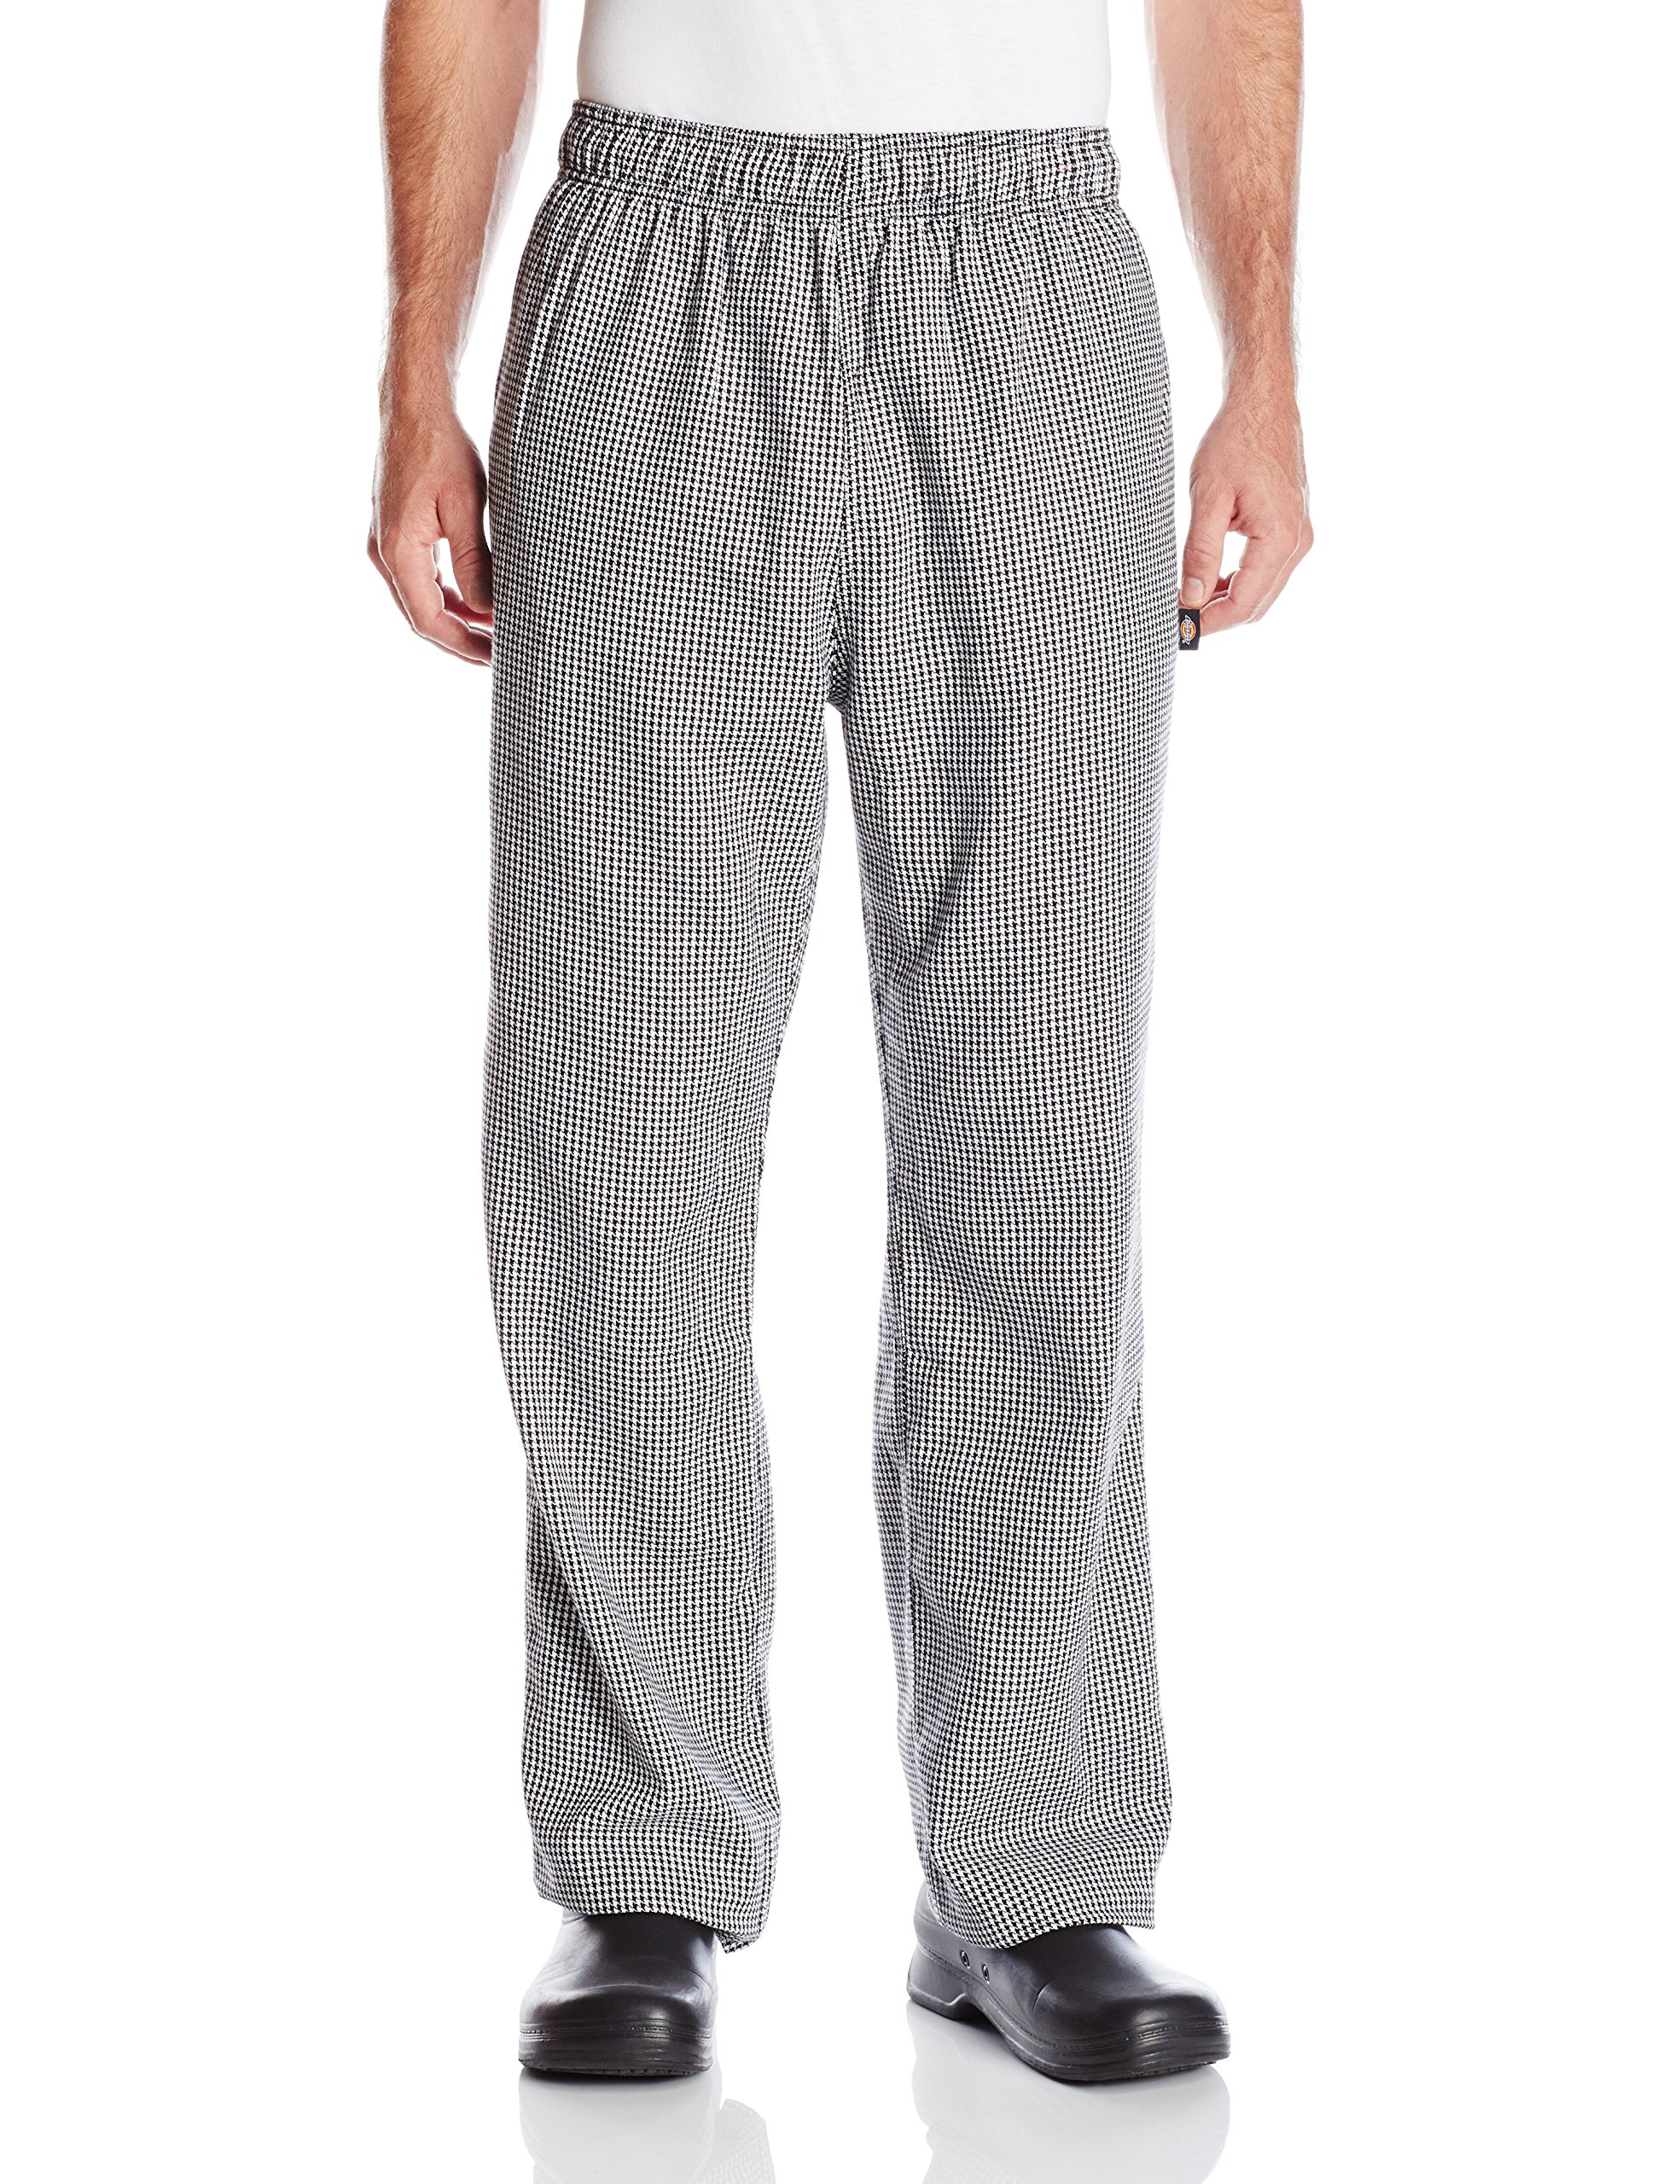 Dickies Chef Traditional Baggy Pant, Houndstooth, Large by Dickies